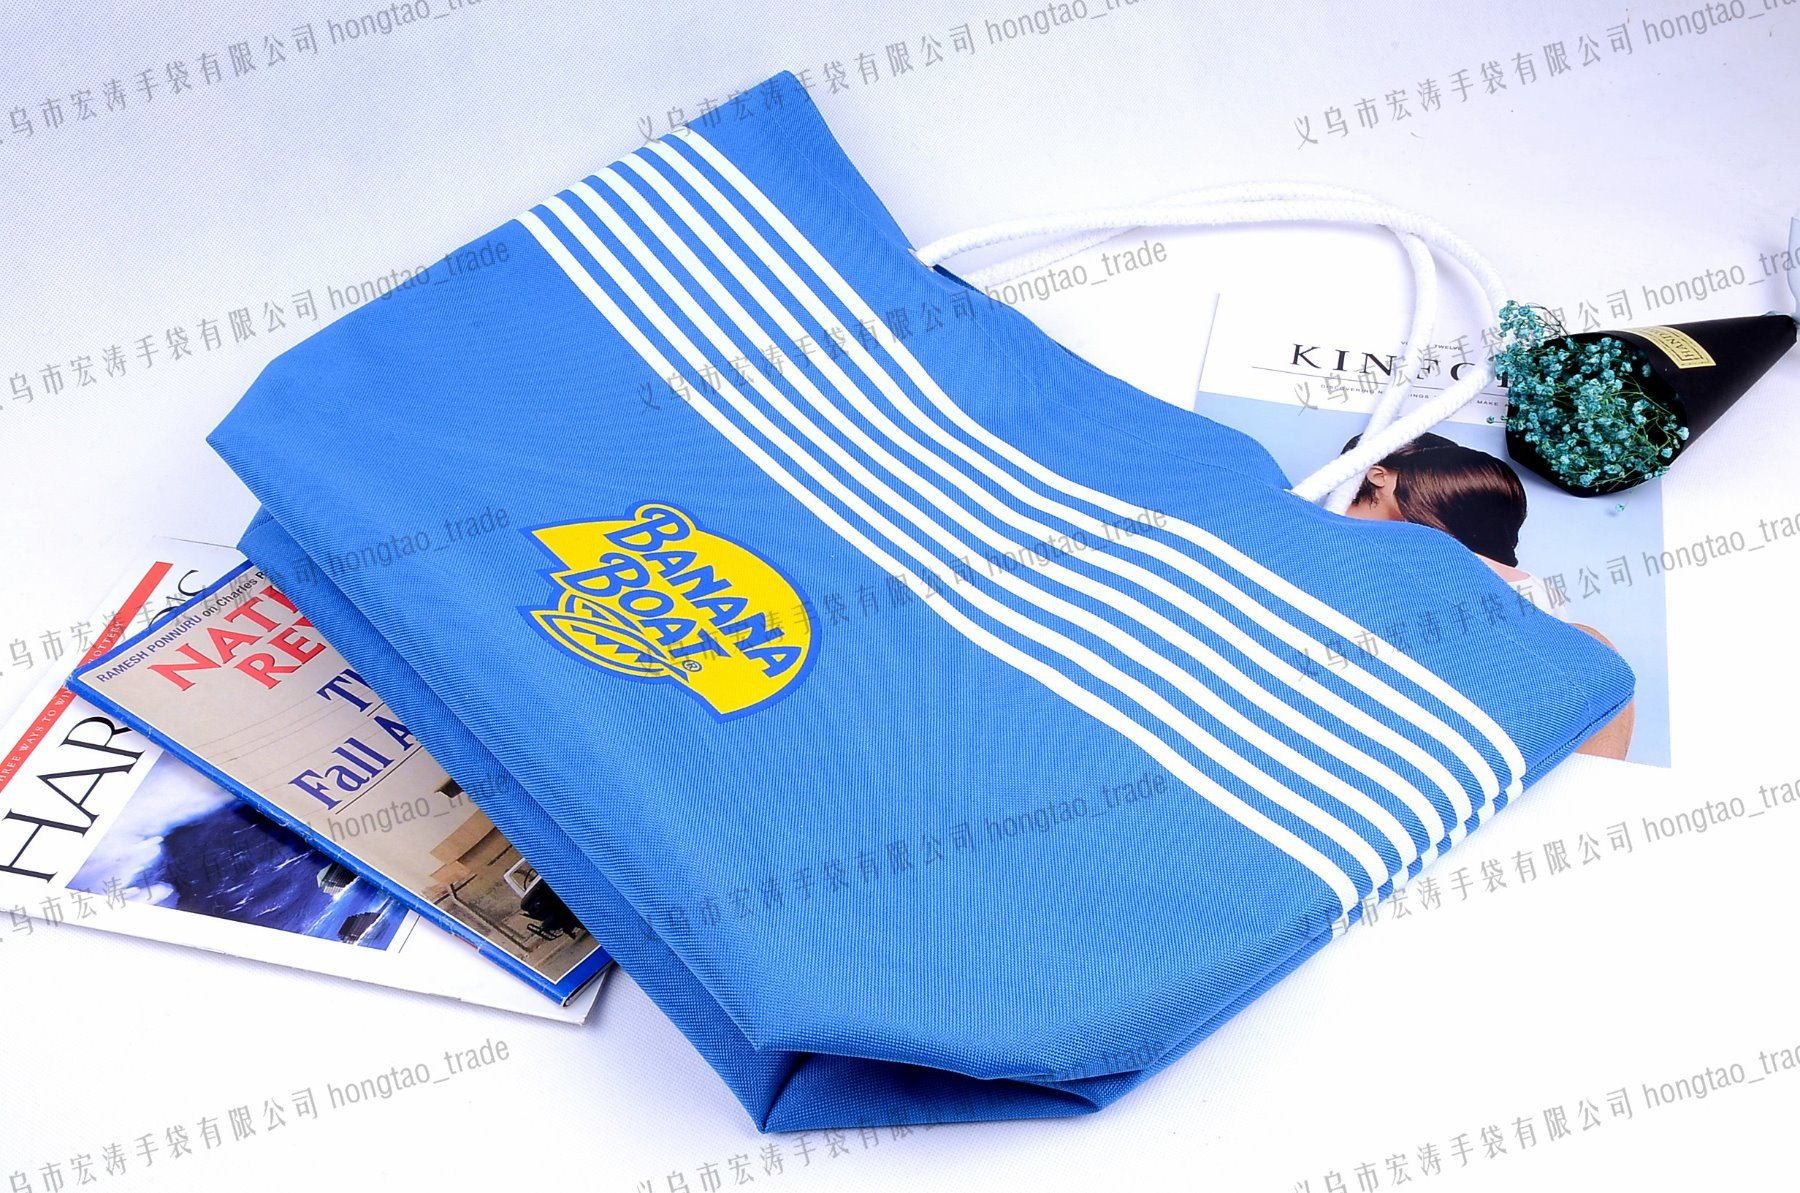 600d Screen Printing Convergent Top Beach Tote Bag pictures & photos